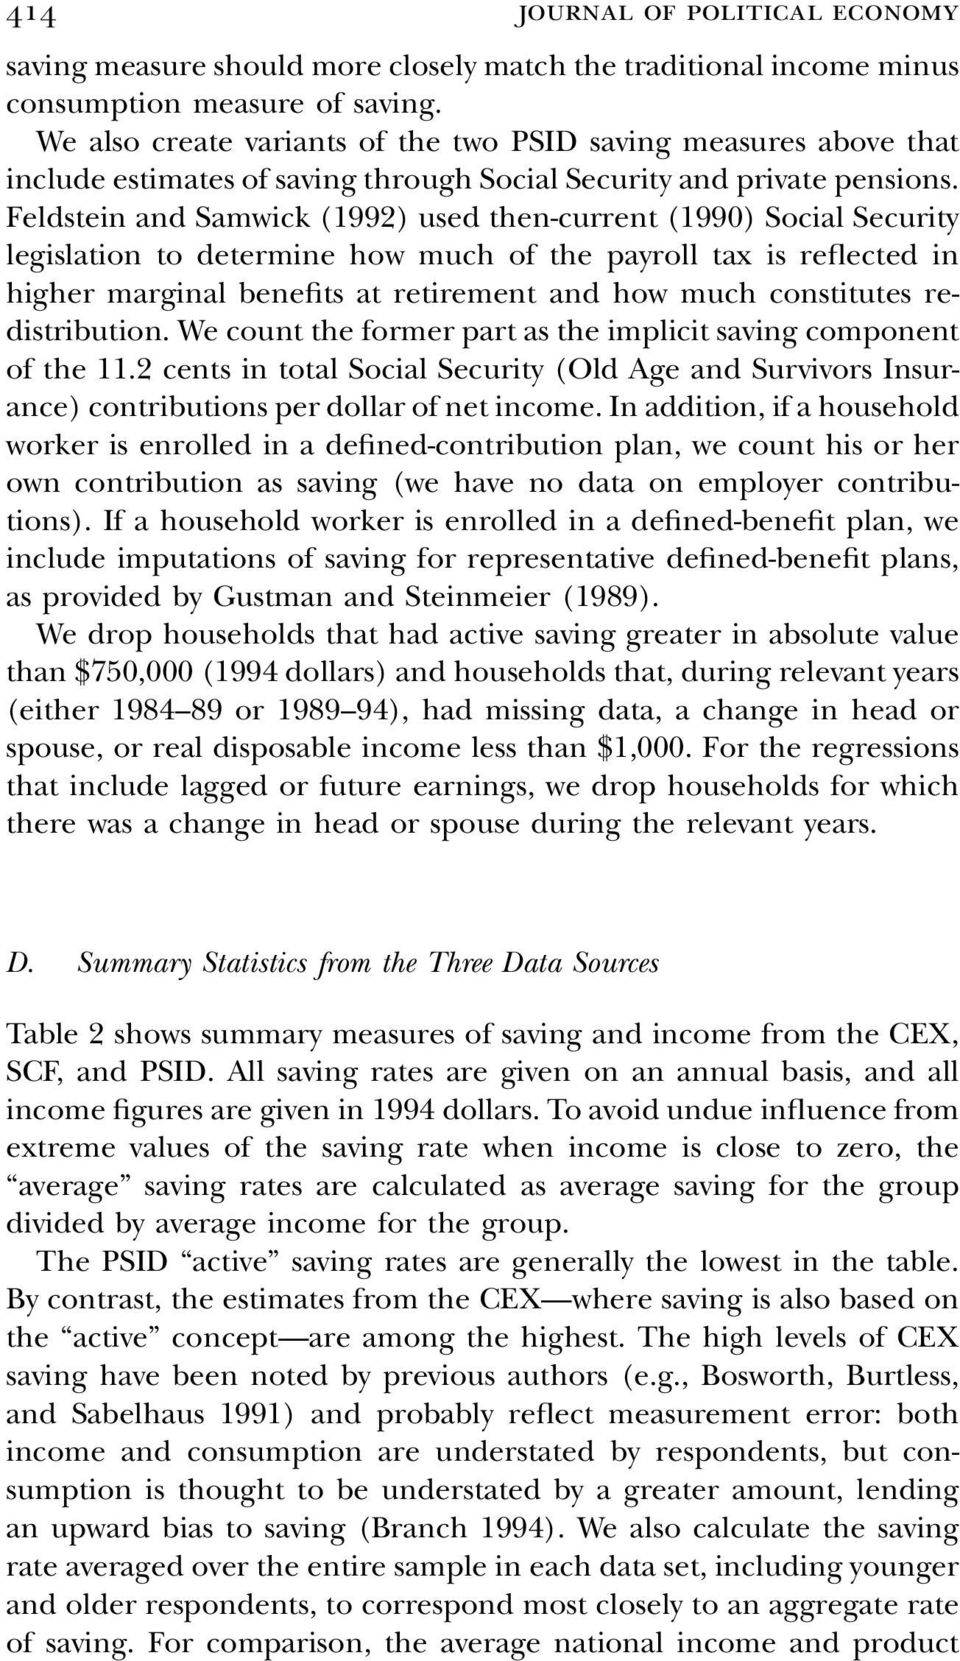 Feldstein and Samwick (1992) used then-current (1990) Social Security legislation to determine how much of the payroll tax is reflected in higher marginal benefits at retirement and how much